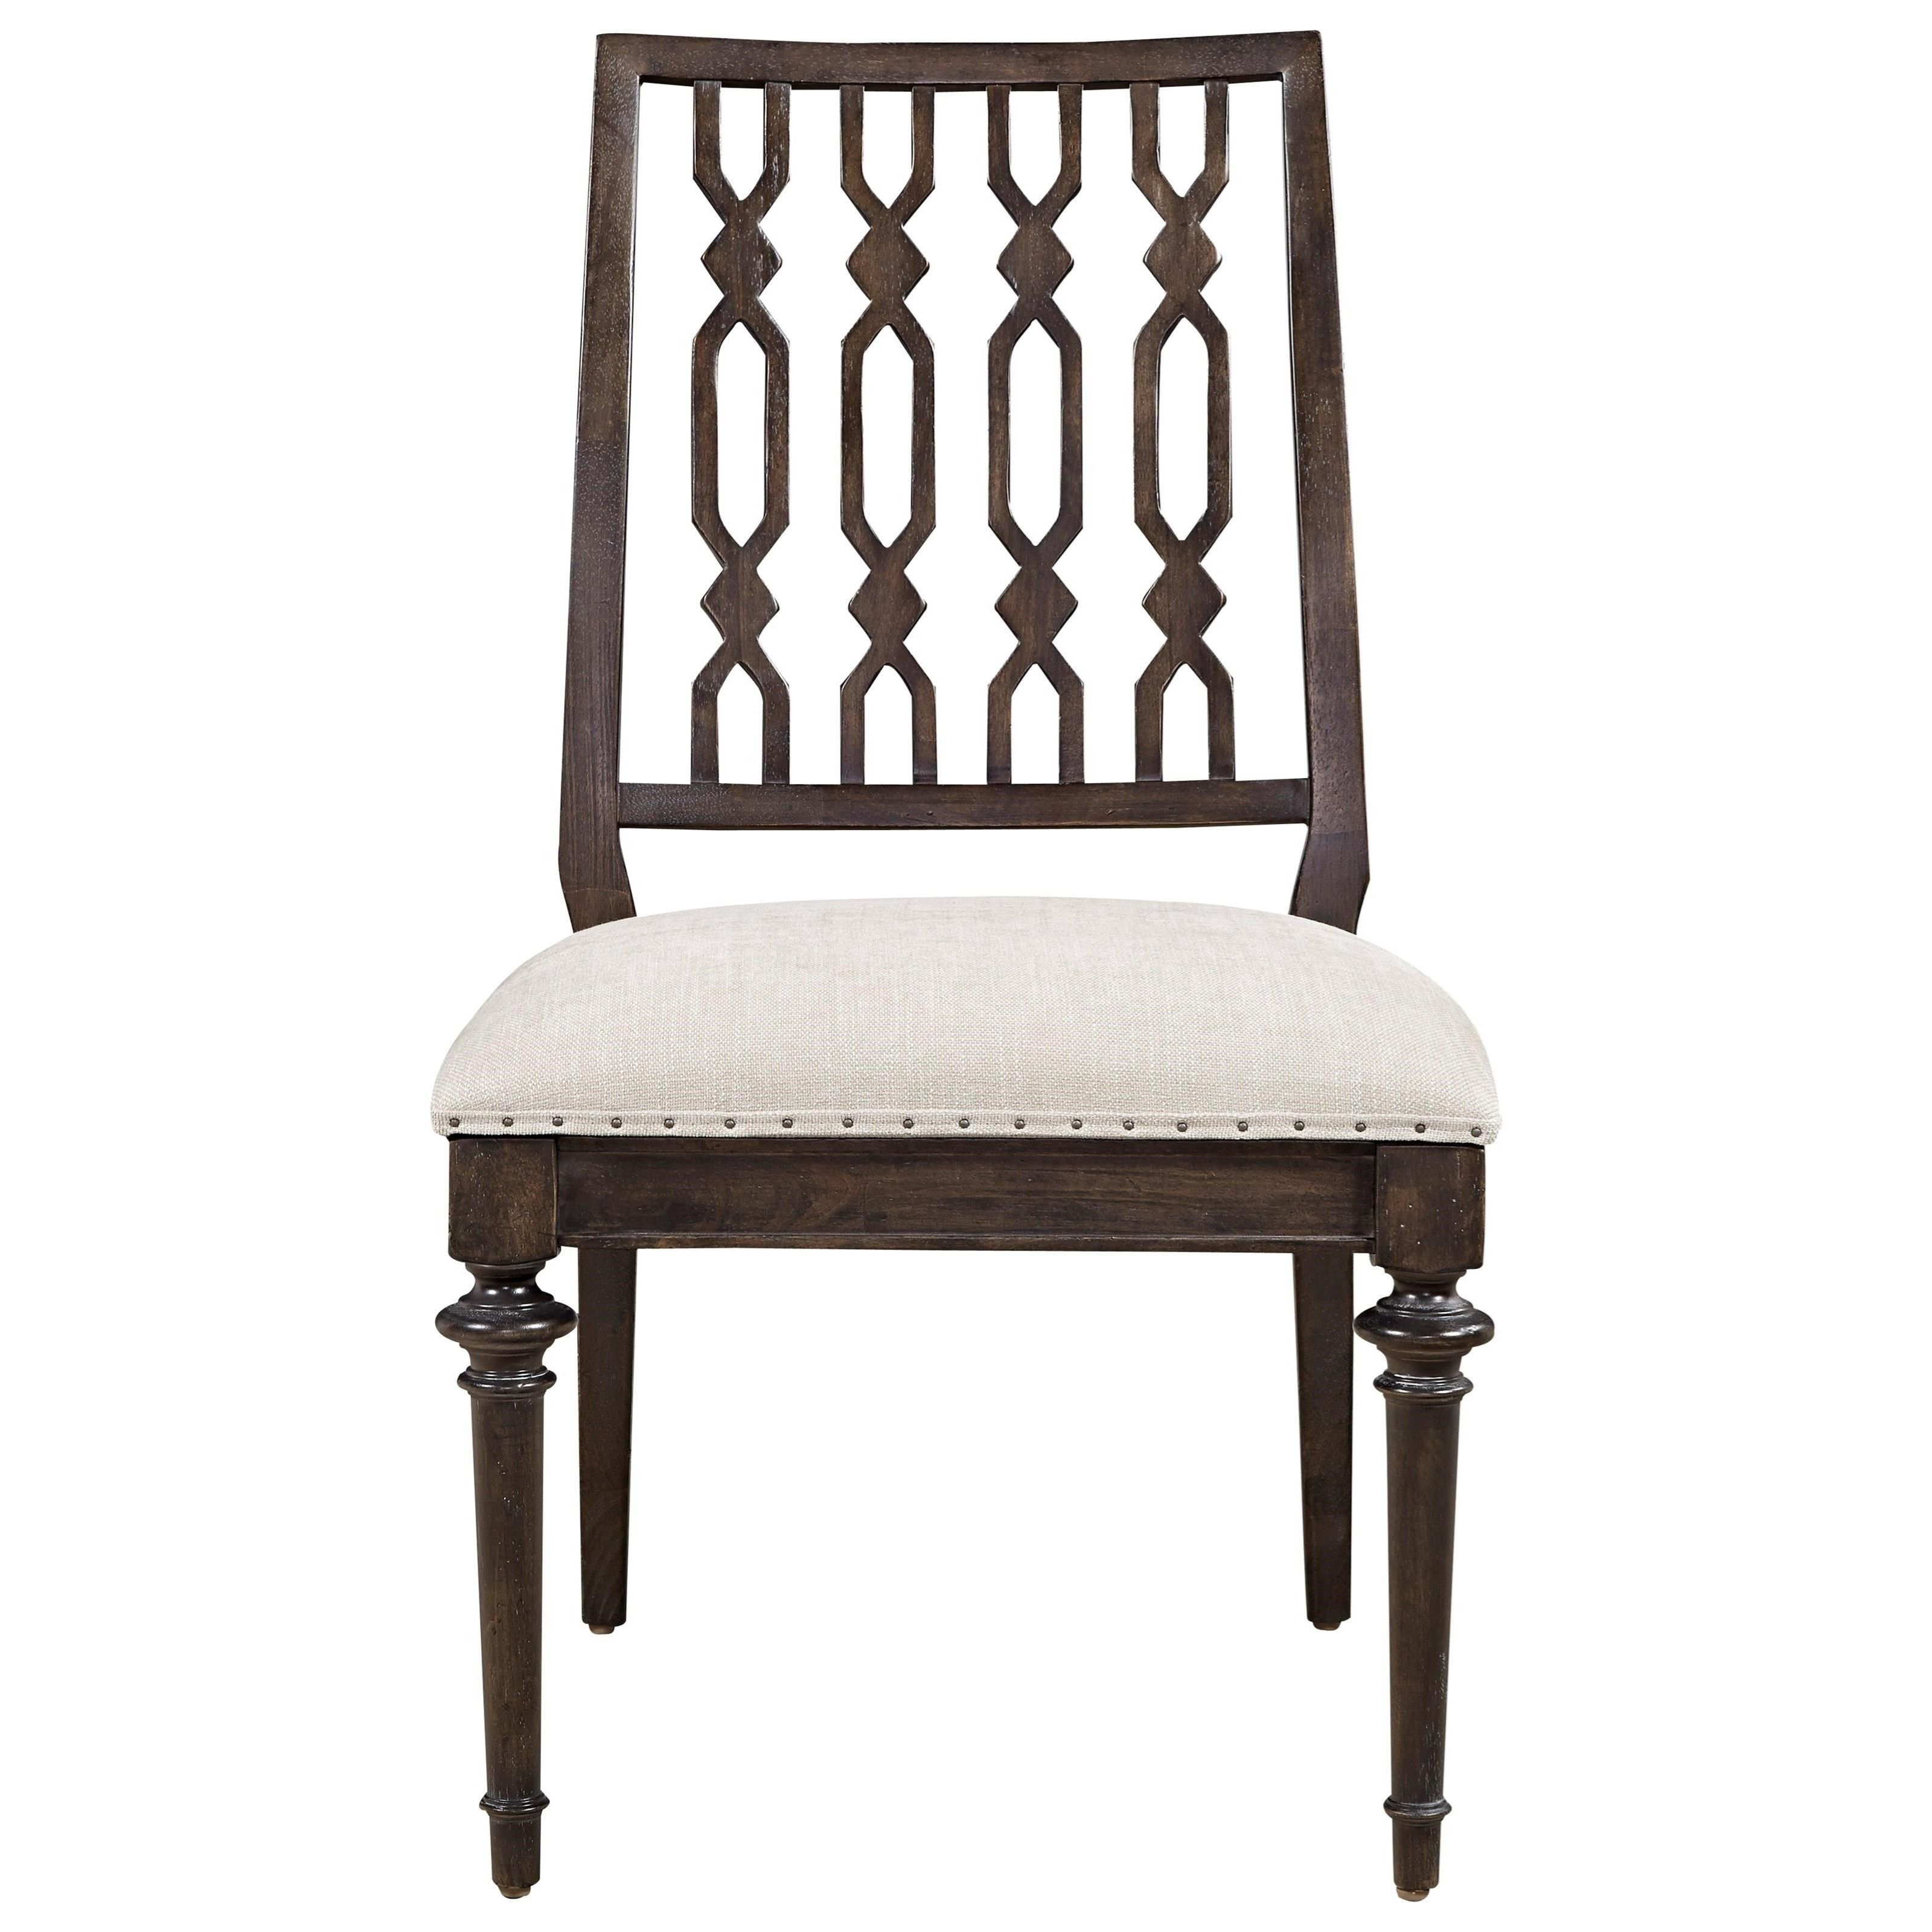 plymouth cable knit side chair by wittman heirloomclassic